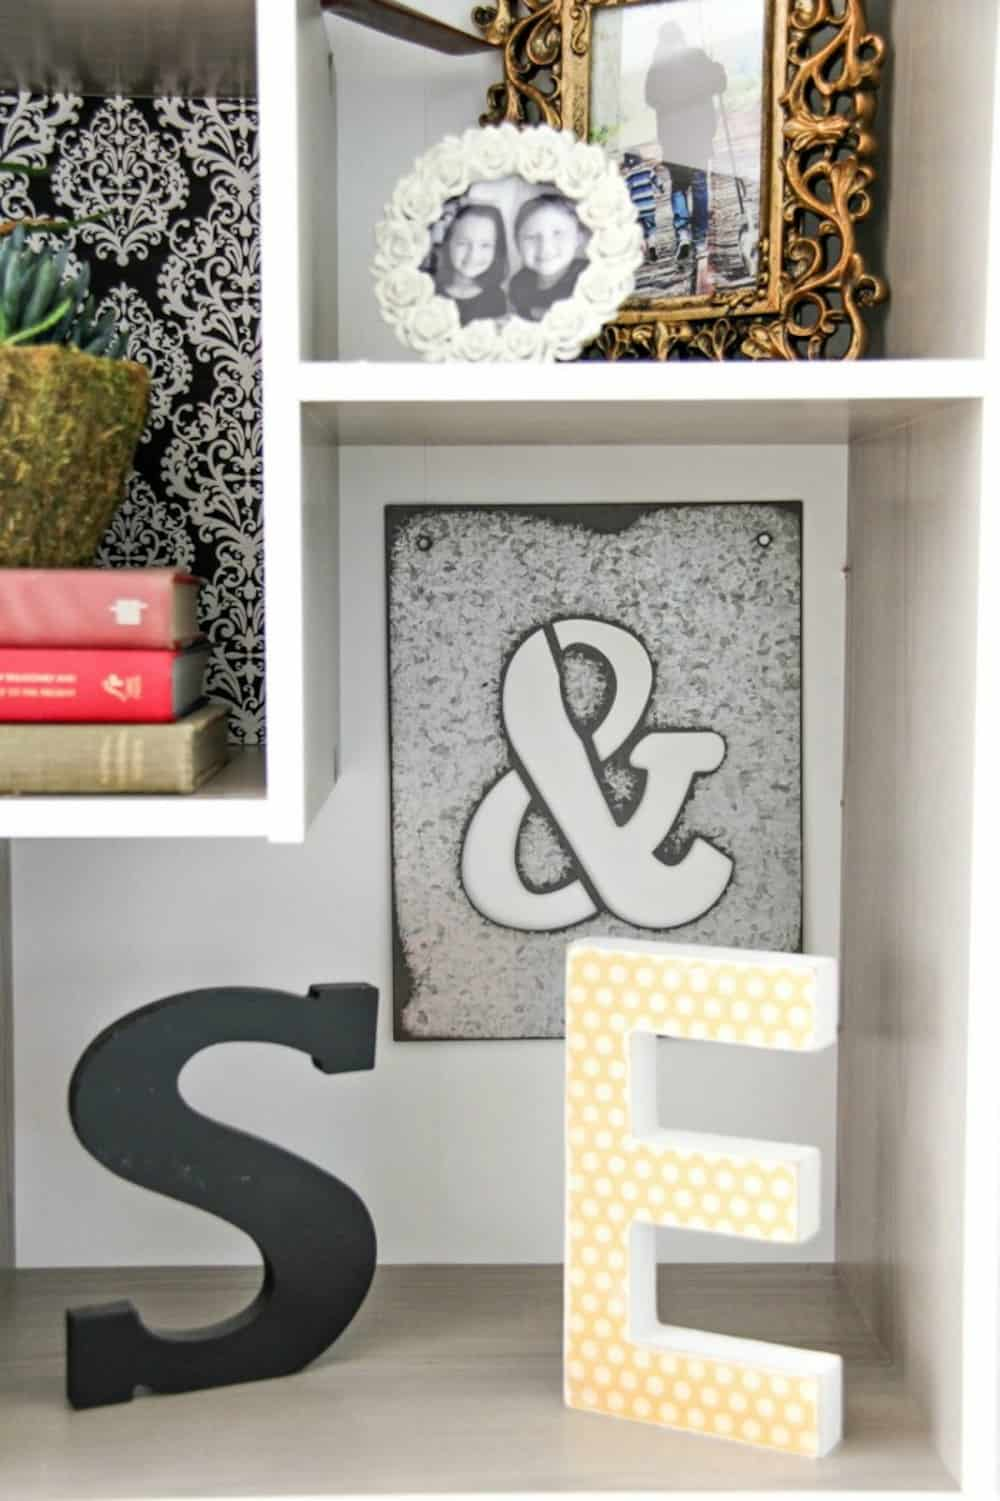 Painted wood letters decorating a book shelf